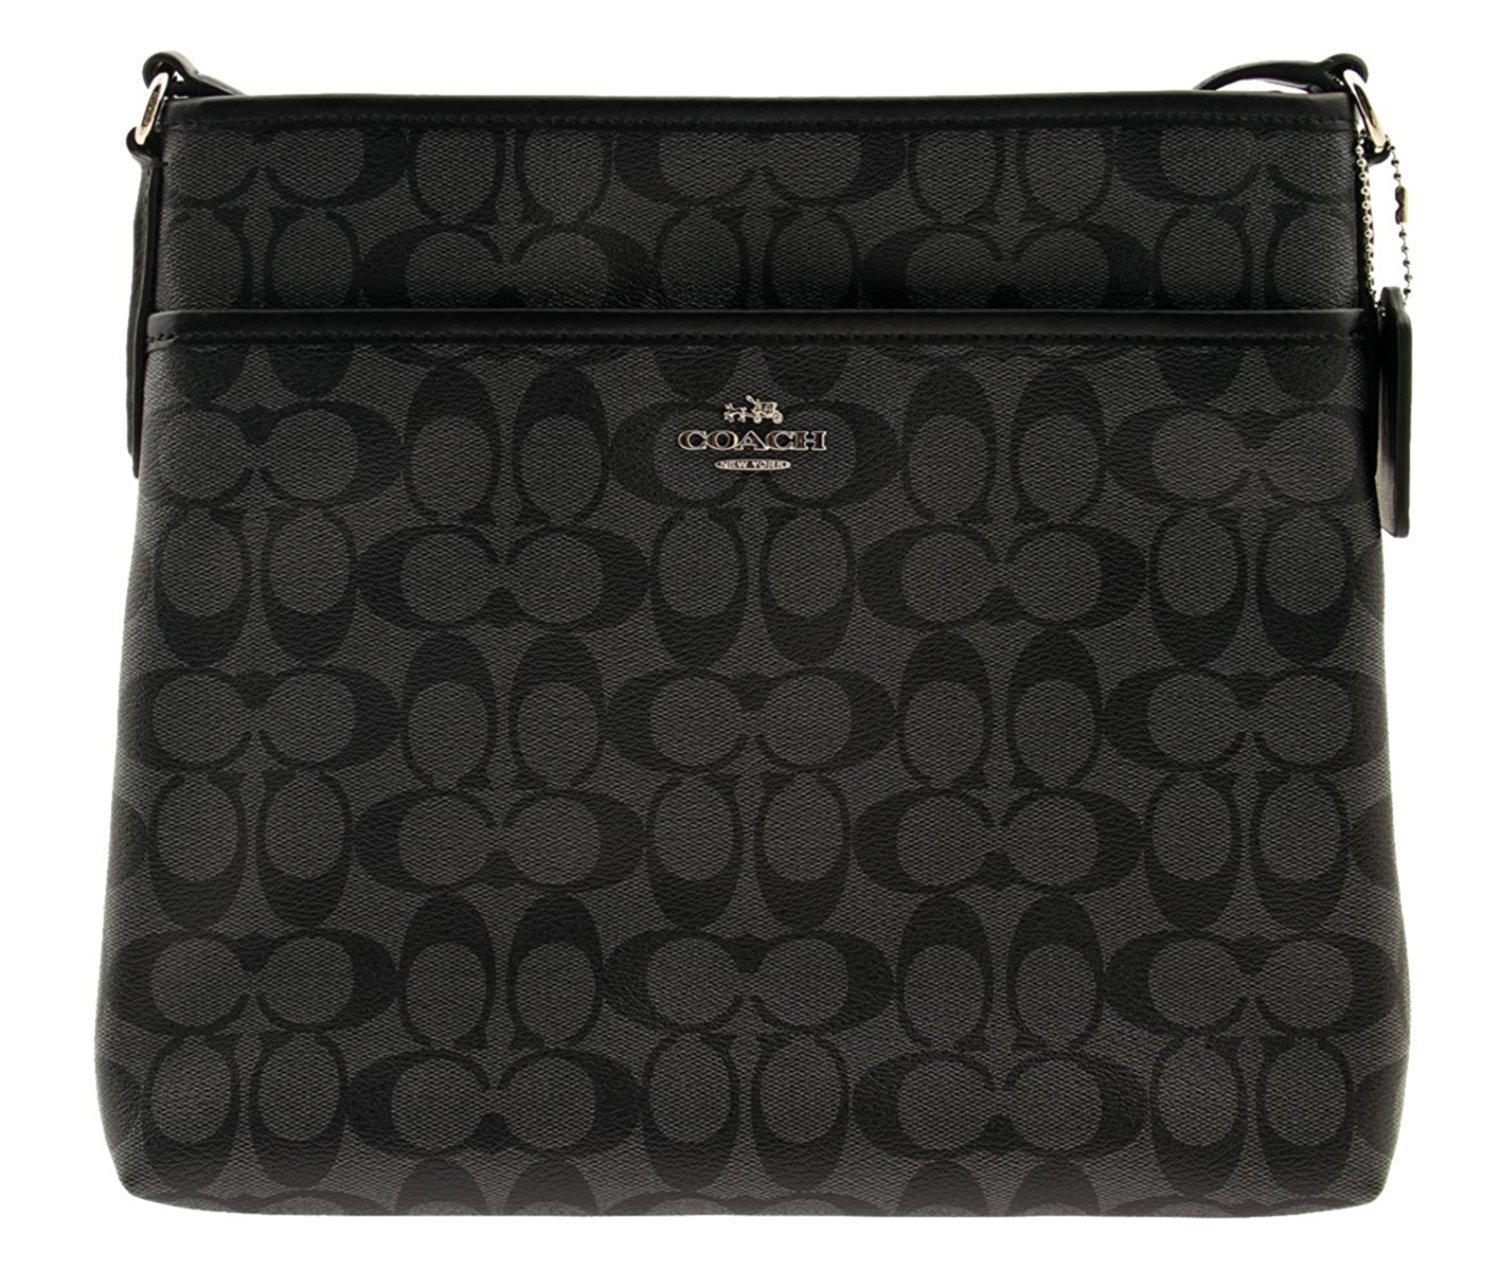 COACH Signature Coated Canvas File Bag Crossbody, F58297 (Black / Smoke)